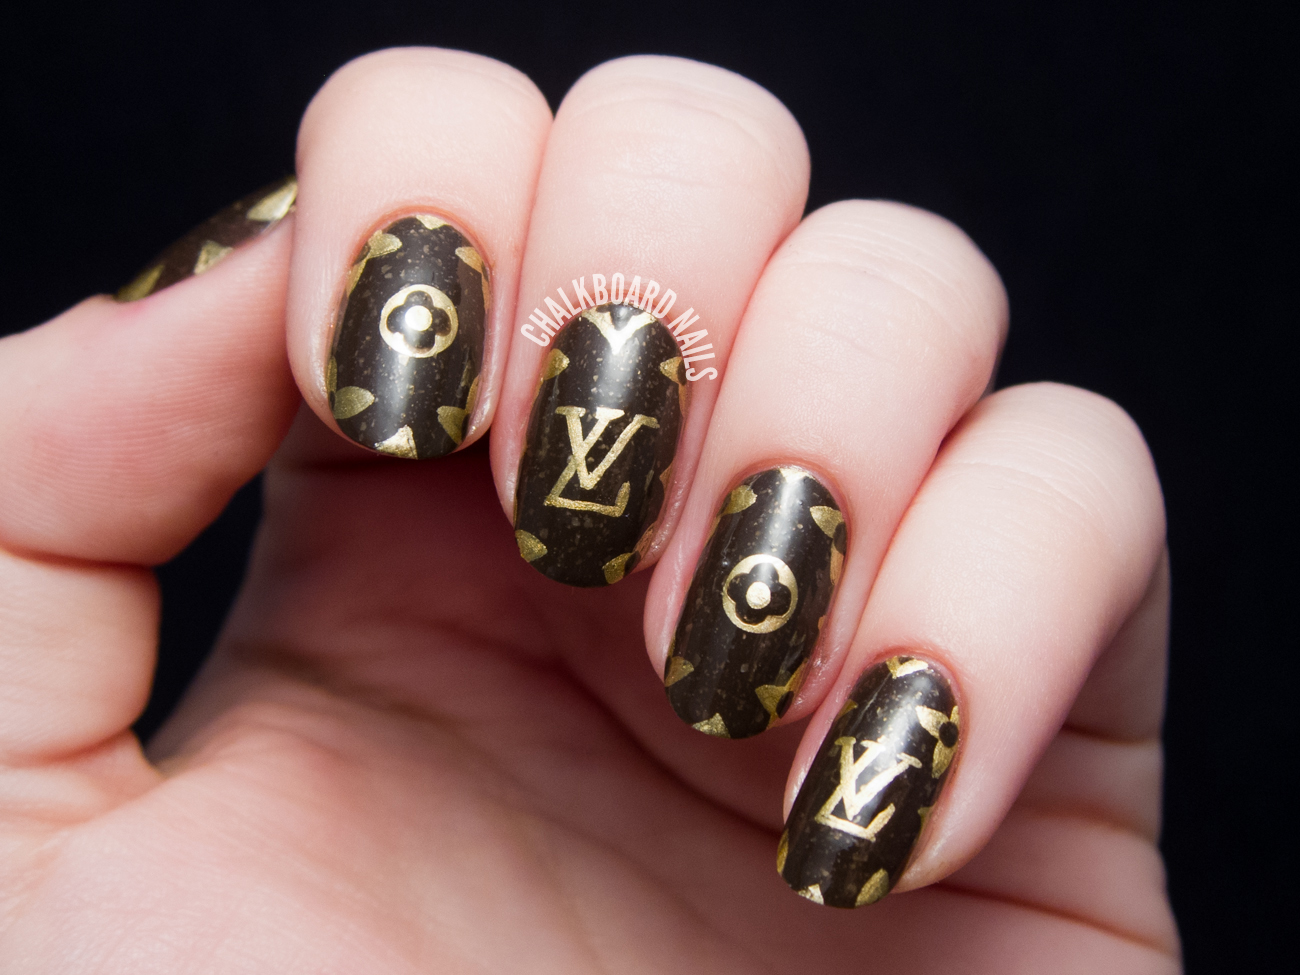 Louis Vuitton pattern nail art by @chalkboardnails